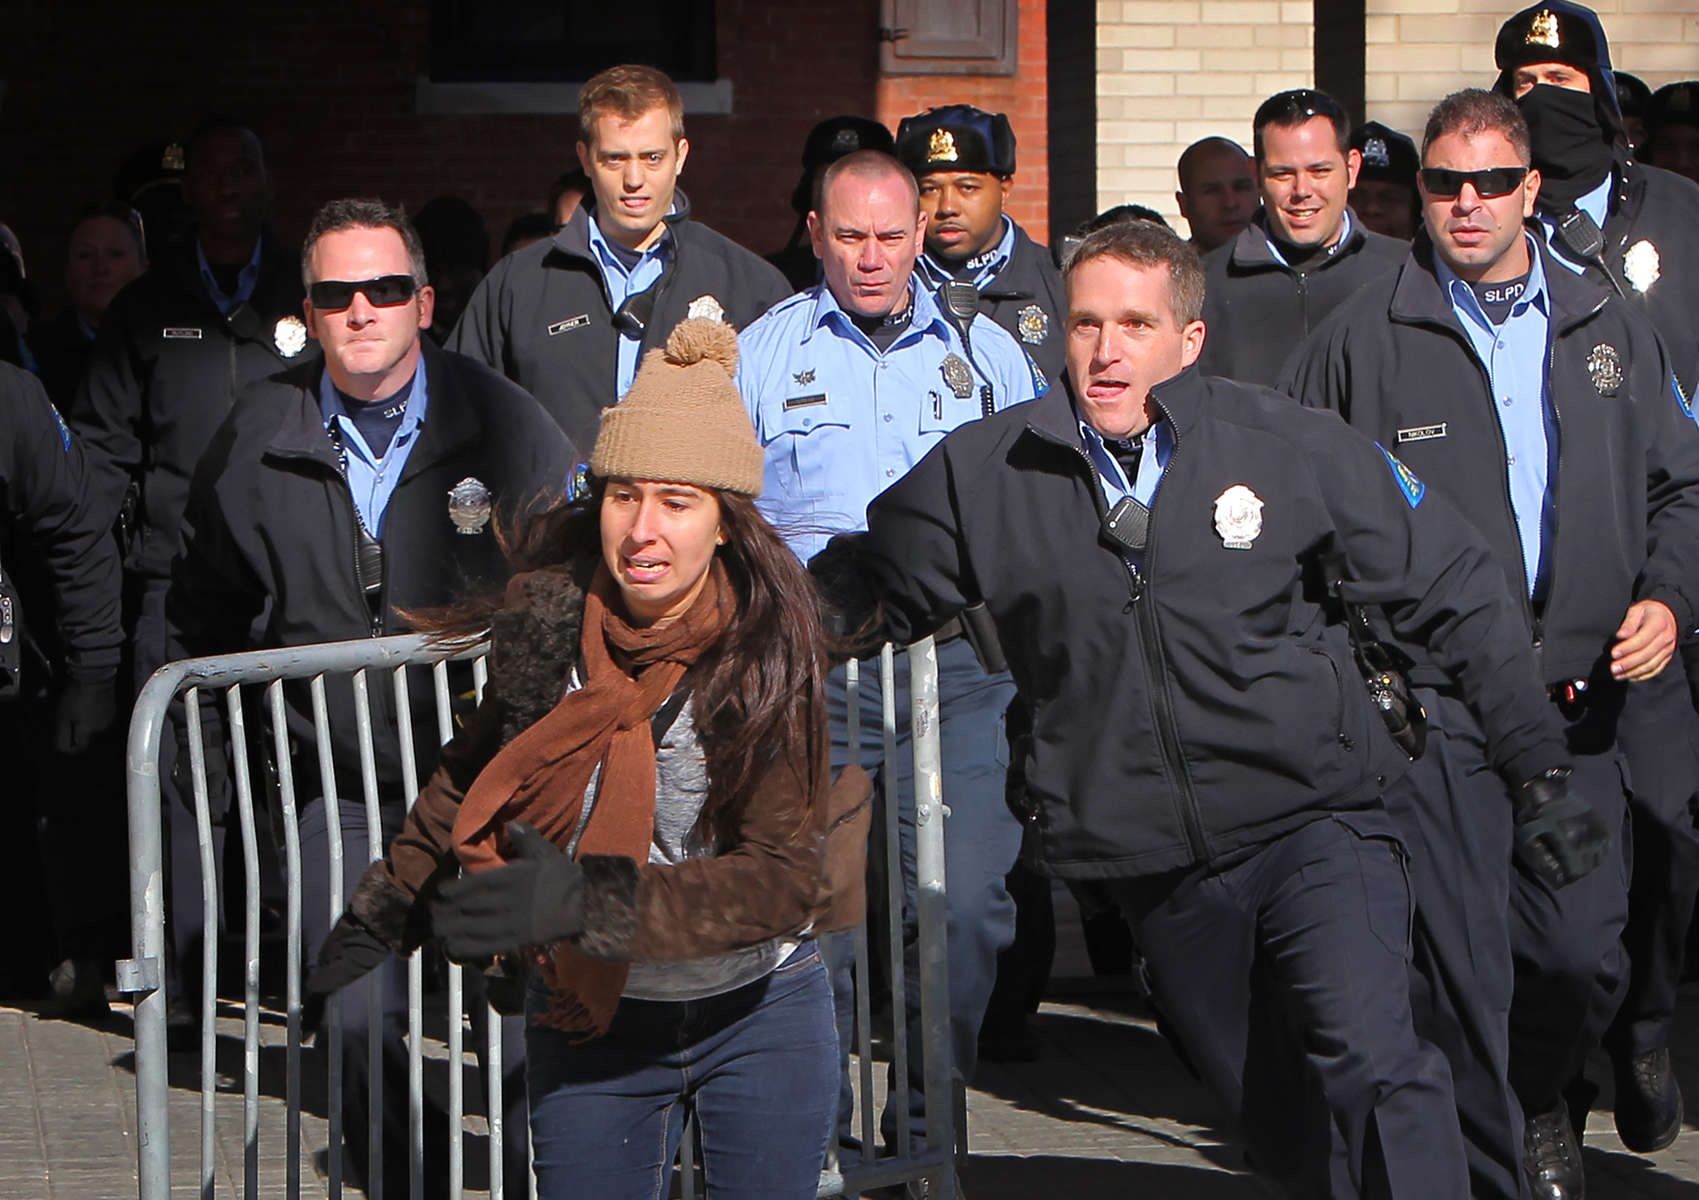 A protester runs away from police after she pushed a metal barricade in their direction outside the St. Louis Police Headquarters on Wednesday, Dec. 31, 2014.  She was arrested a short time later.Photo By David Carson, dcarson@post-dispatch.com